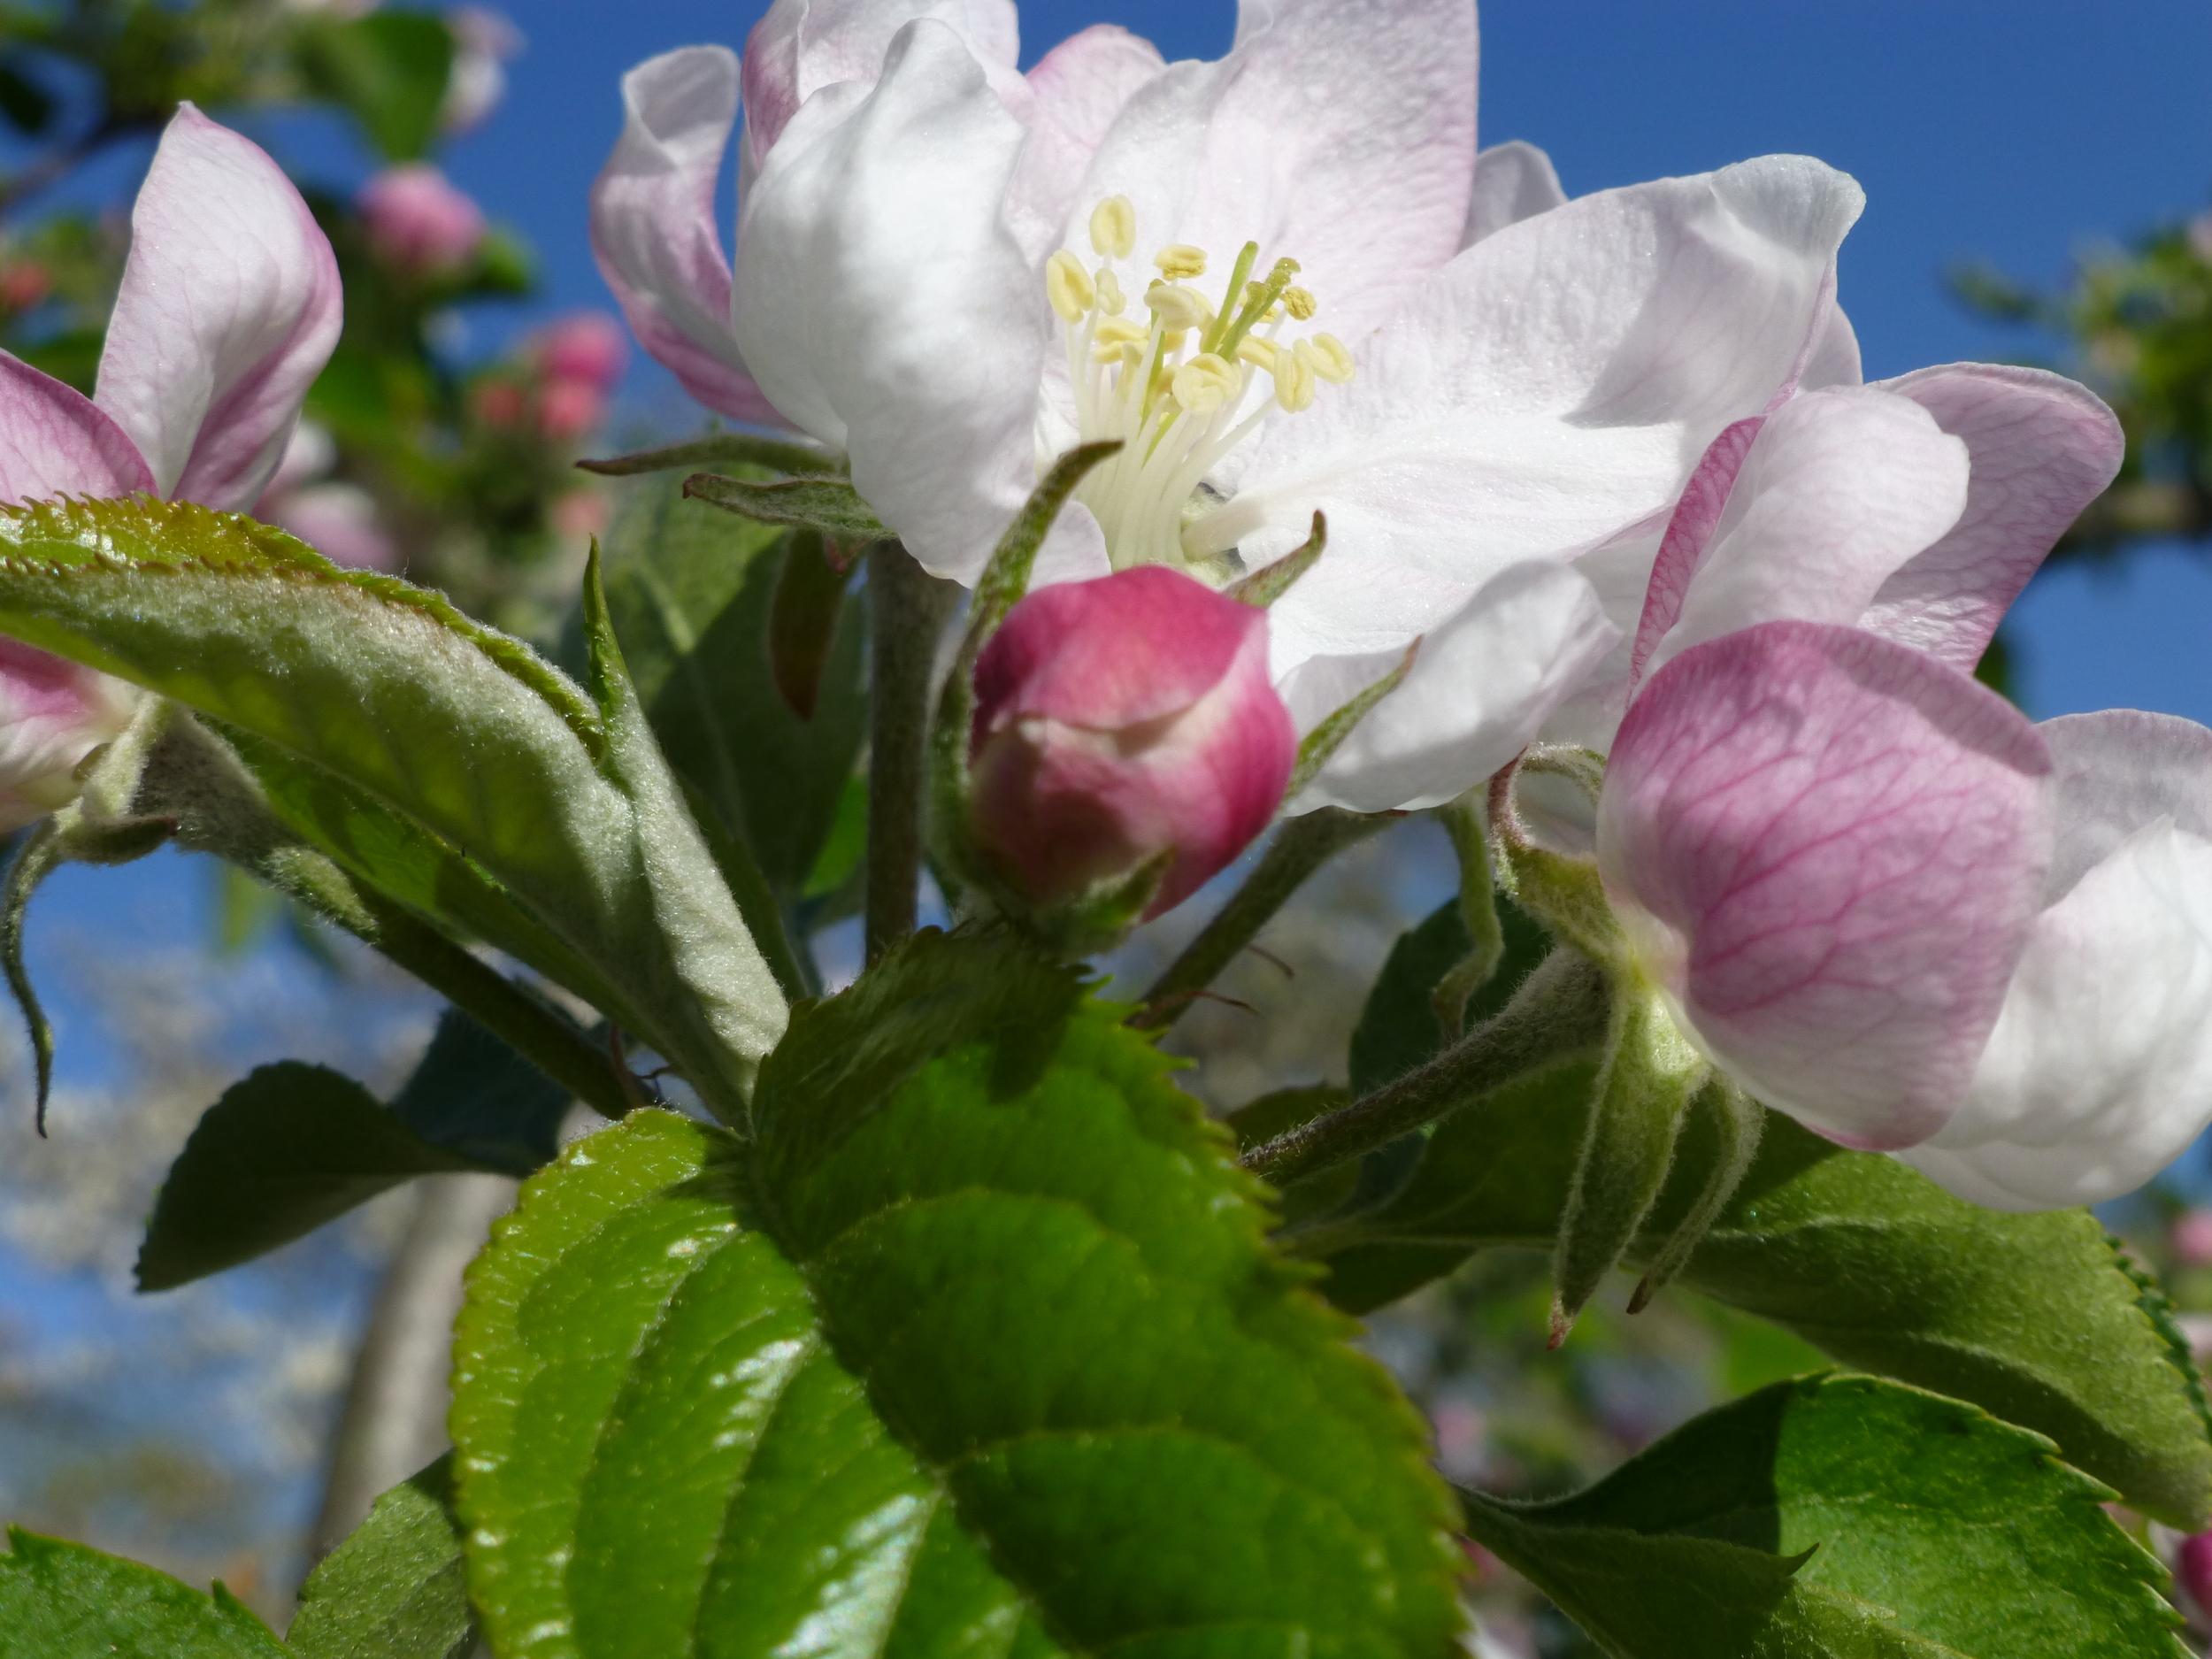 Spring apple blossom in The Tipsy Tomato's orchard